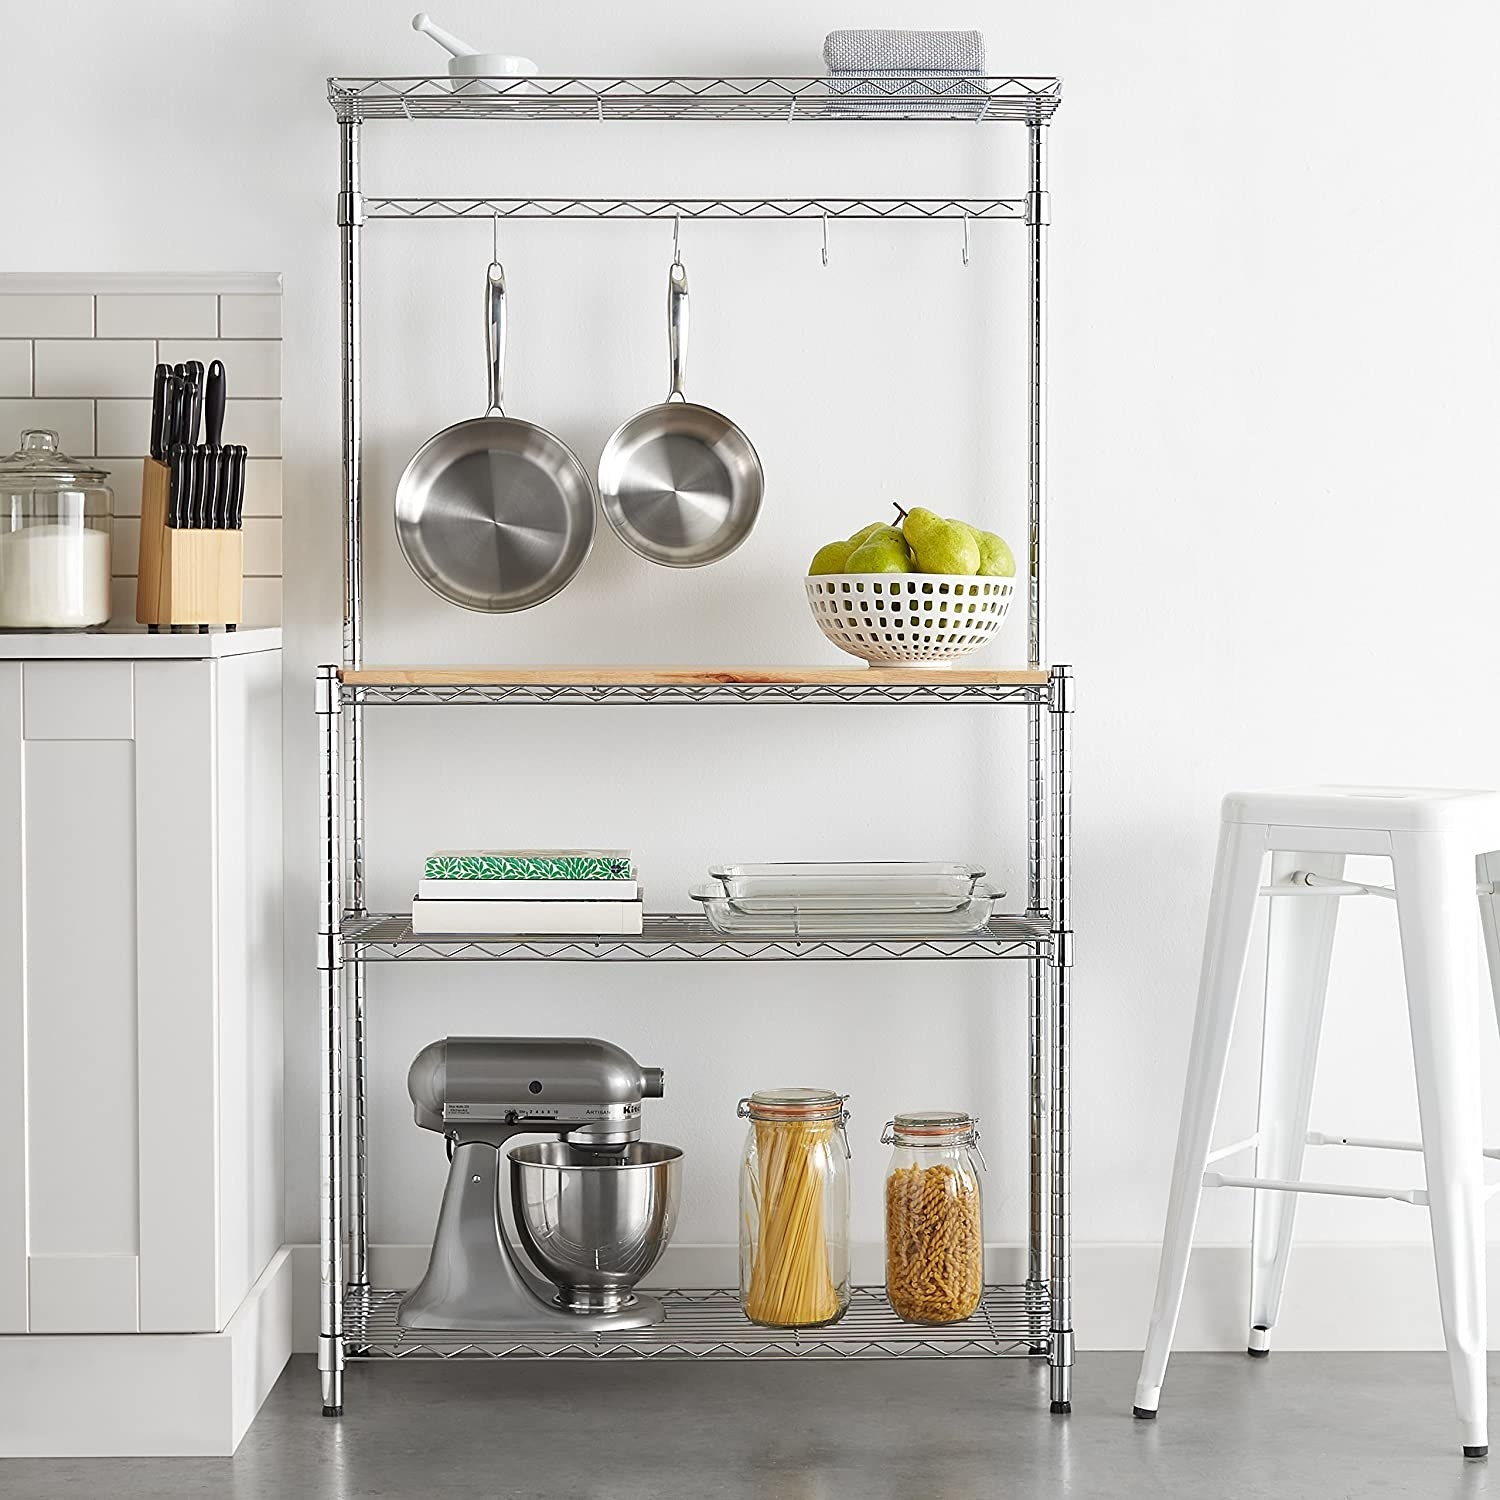 The four tier shelf holding various kitchen supplies